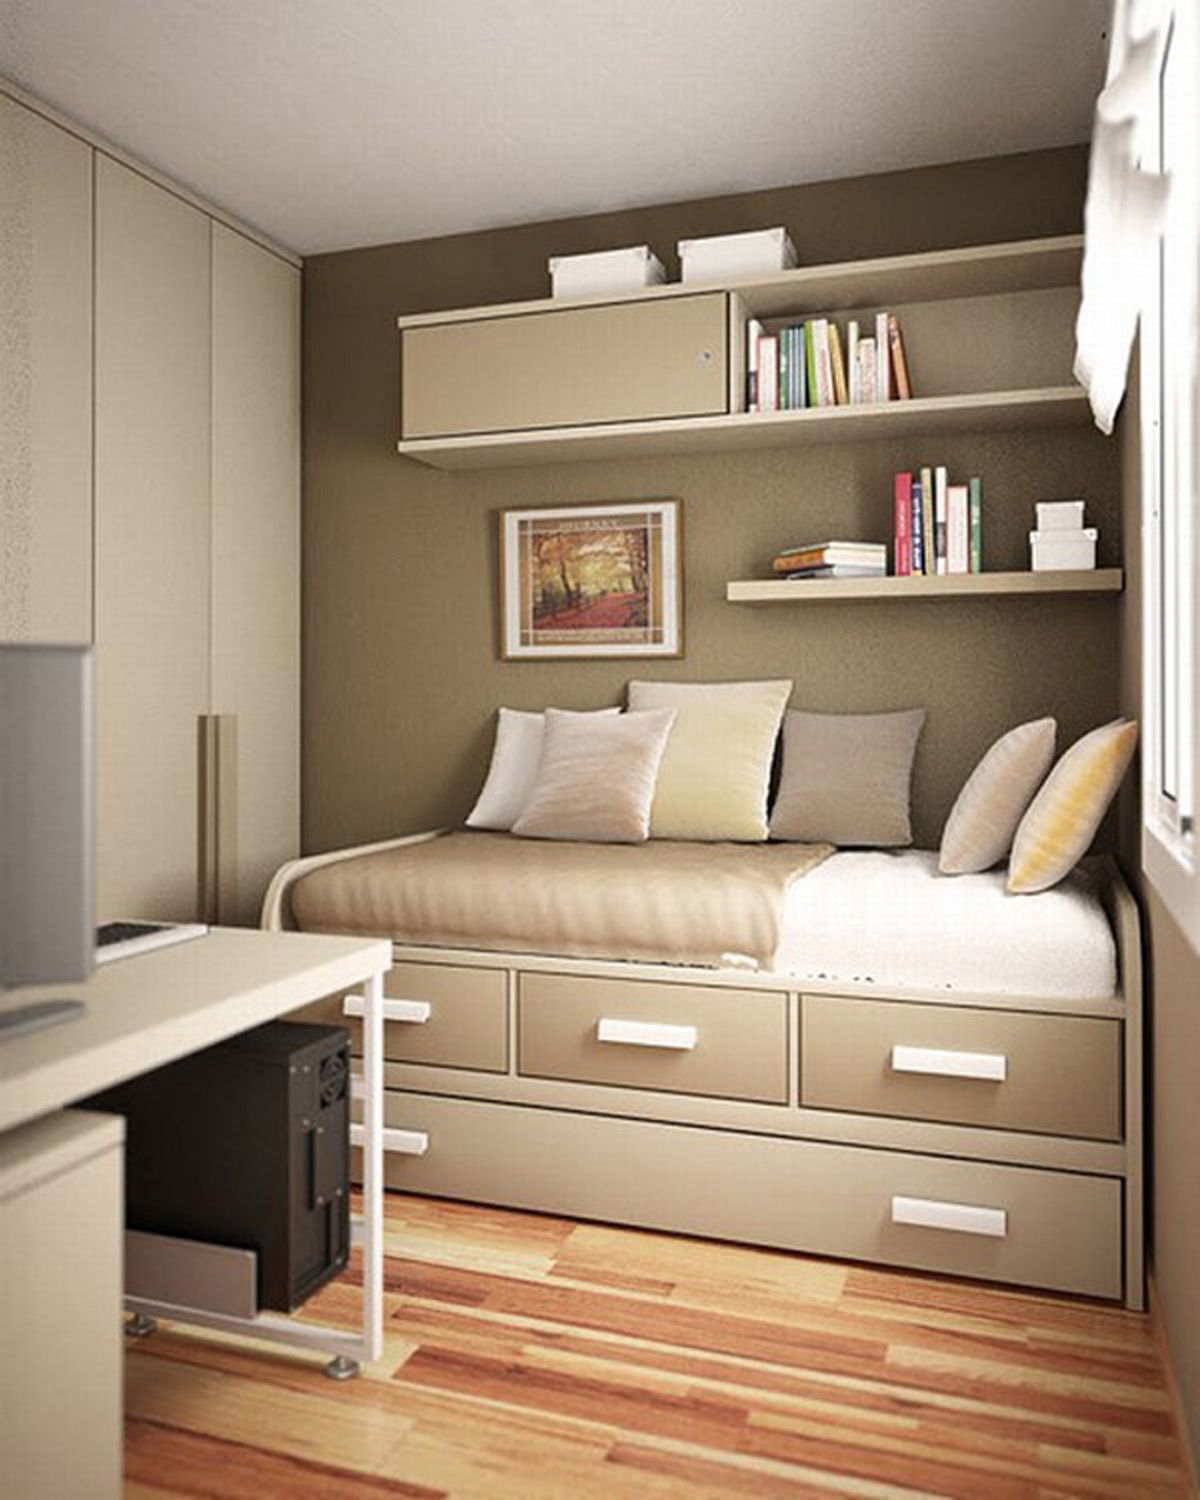 contemporary small bedroom ideas - Bedroom Ideas For Small Rooms